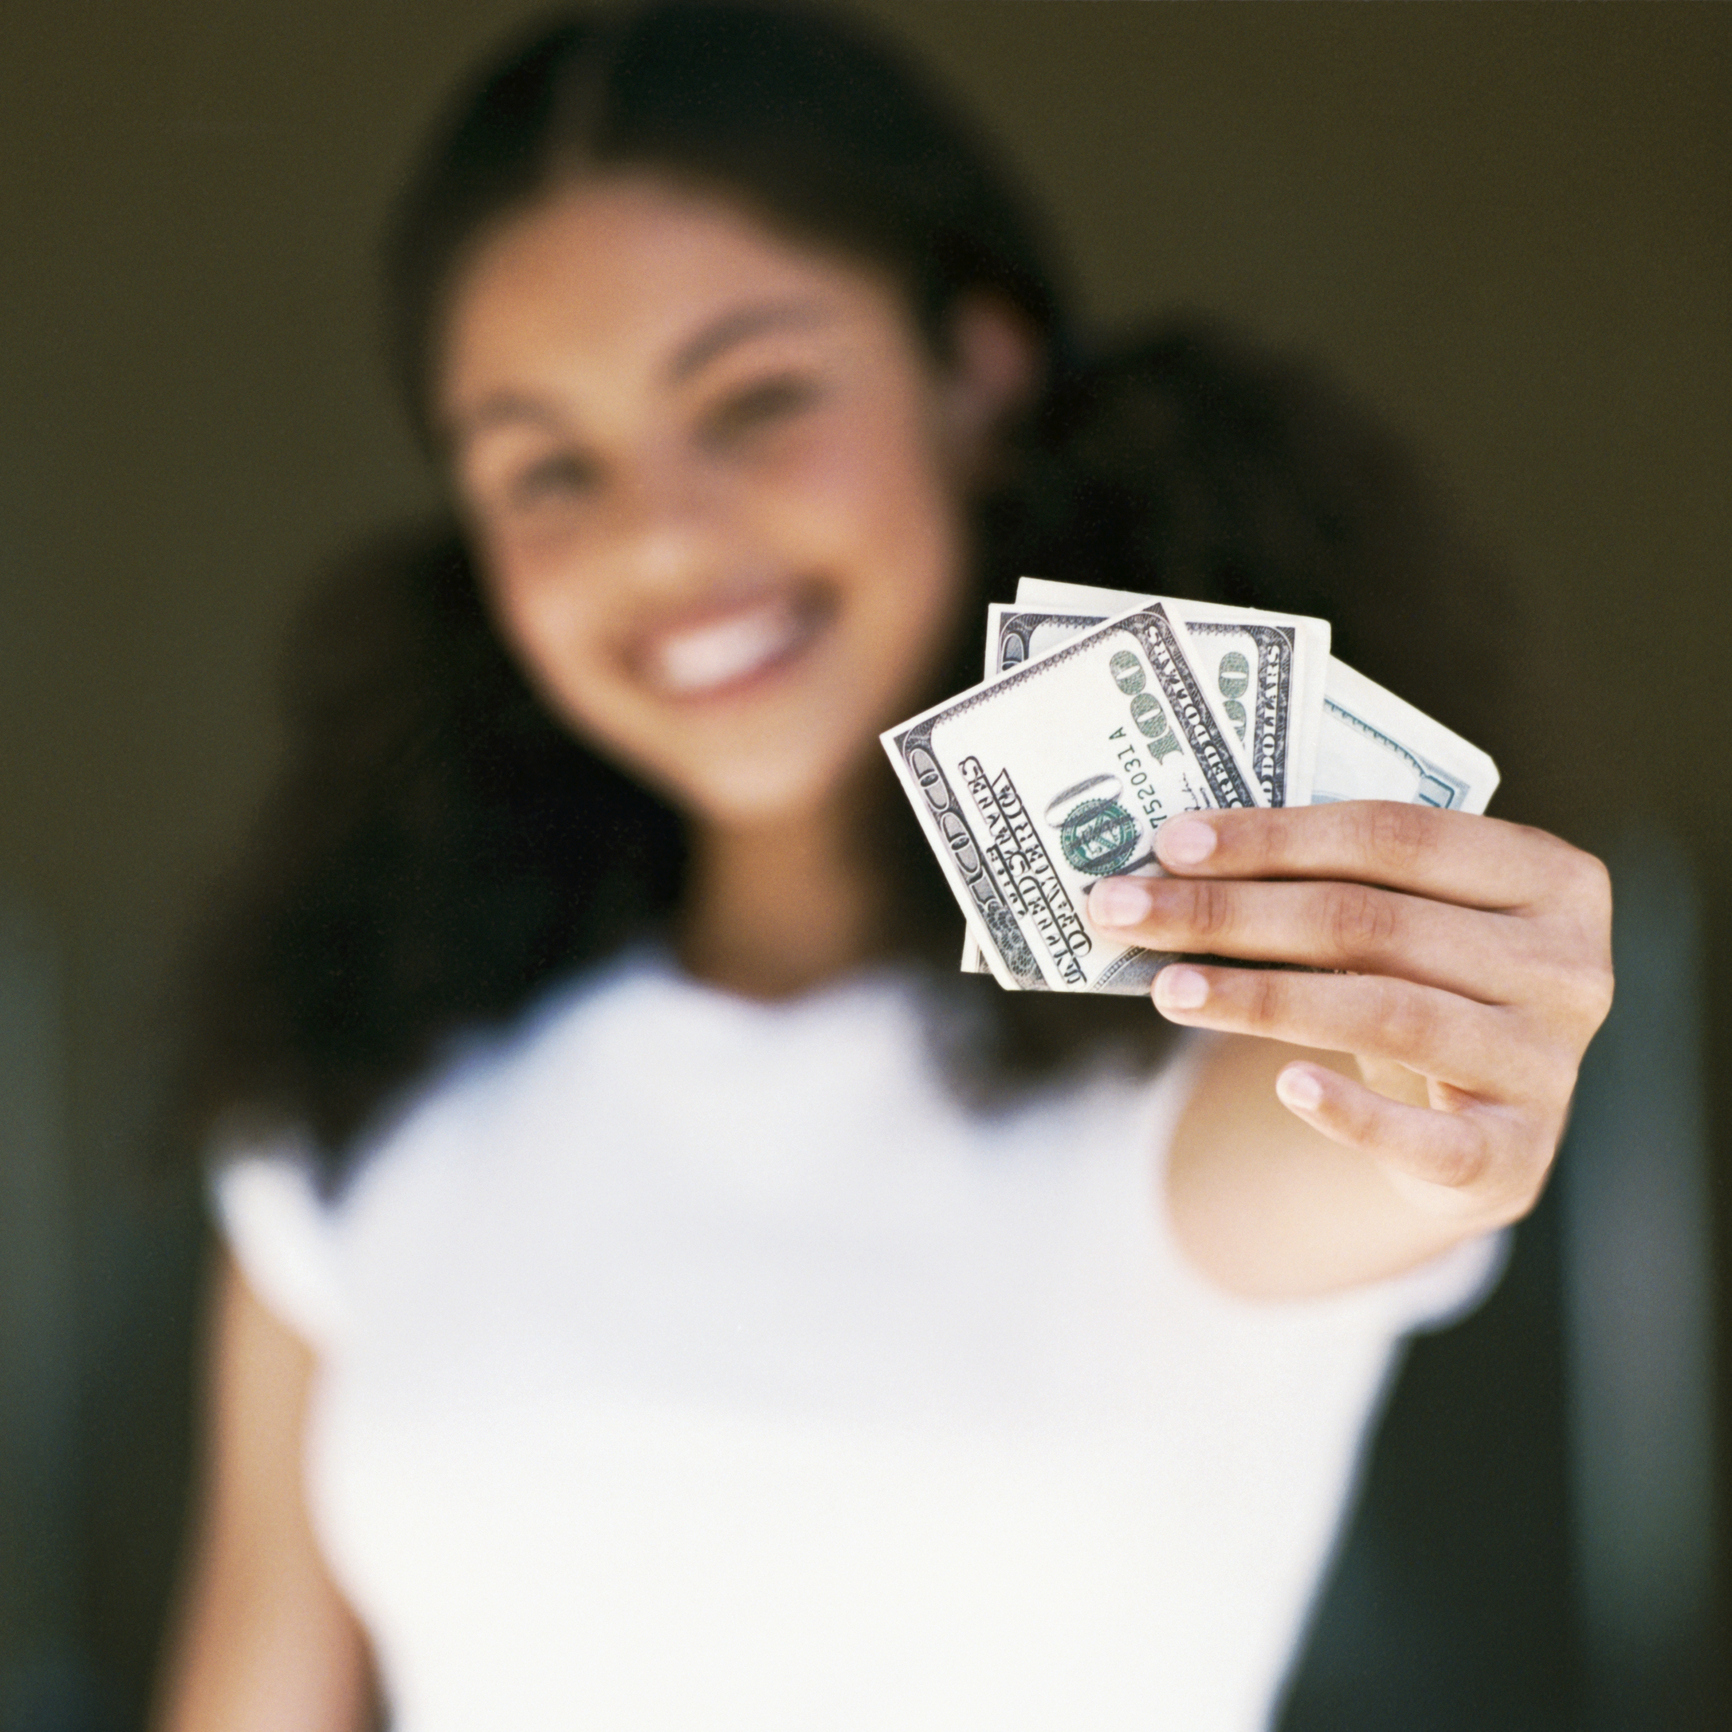 Woman holding US currency